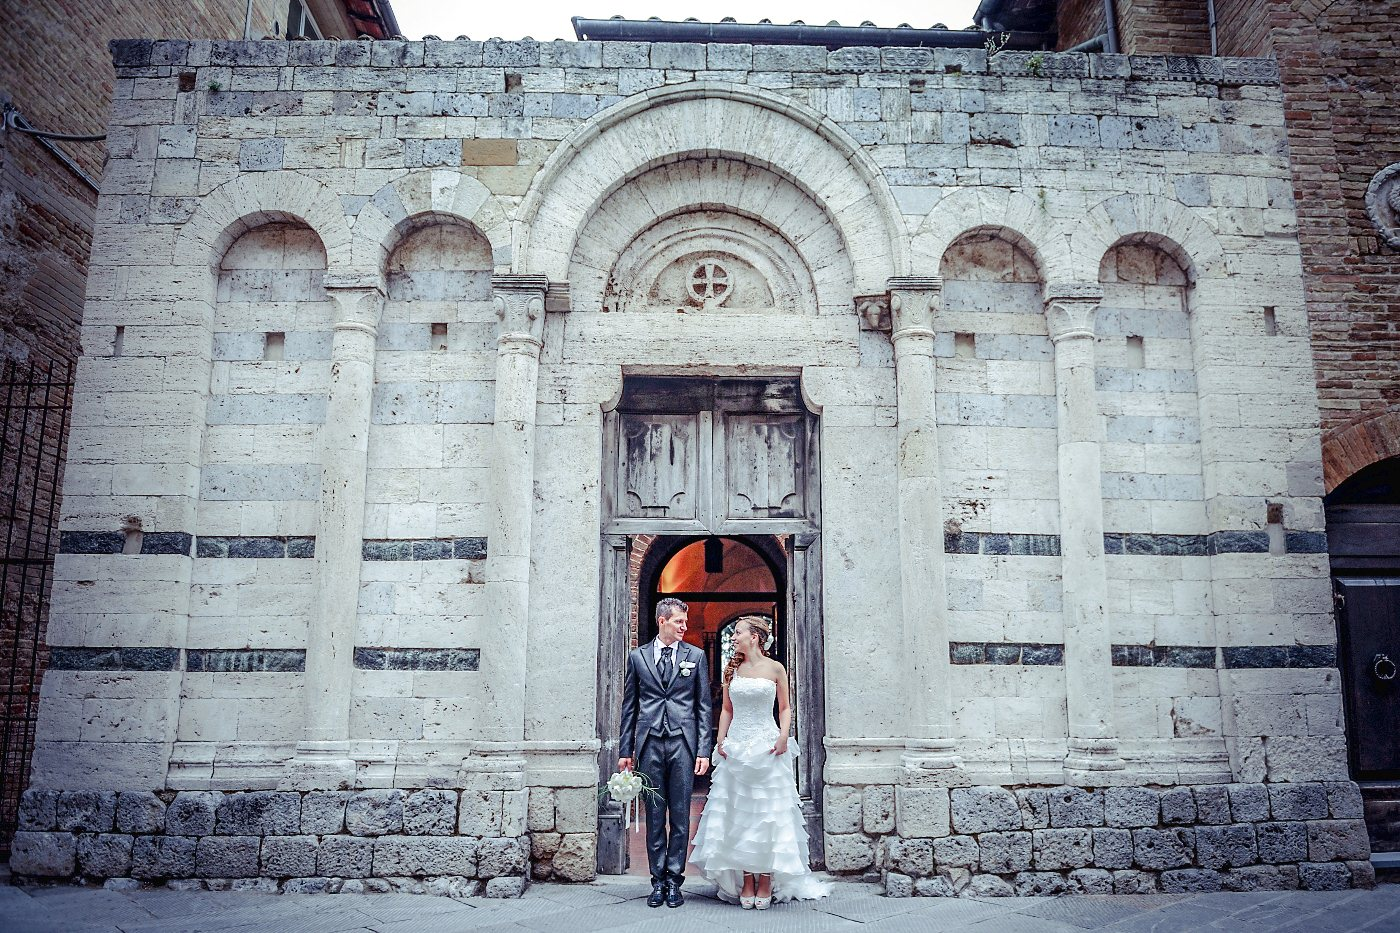 wedding photo san gimignano_15.jpg